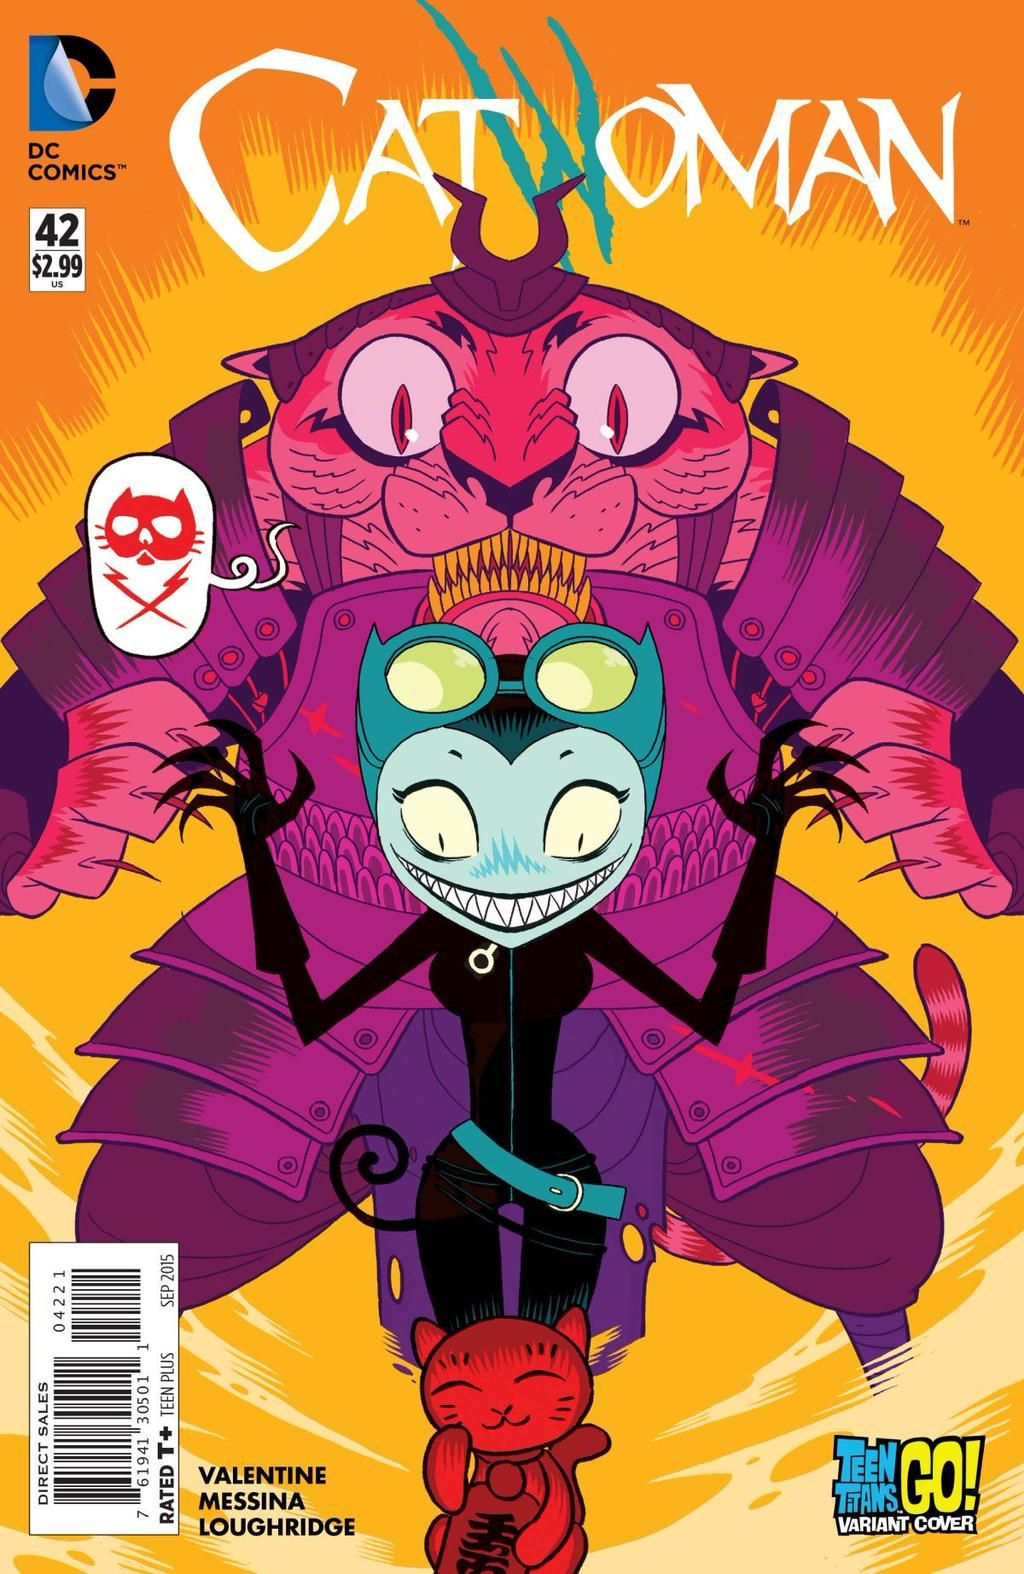 .@MTVNews has your exclusive preview for next week's new CATWOMAN #42: http://on.mtv.com/1f2vX6X